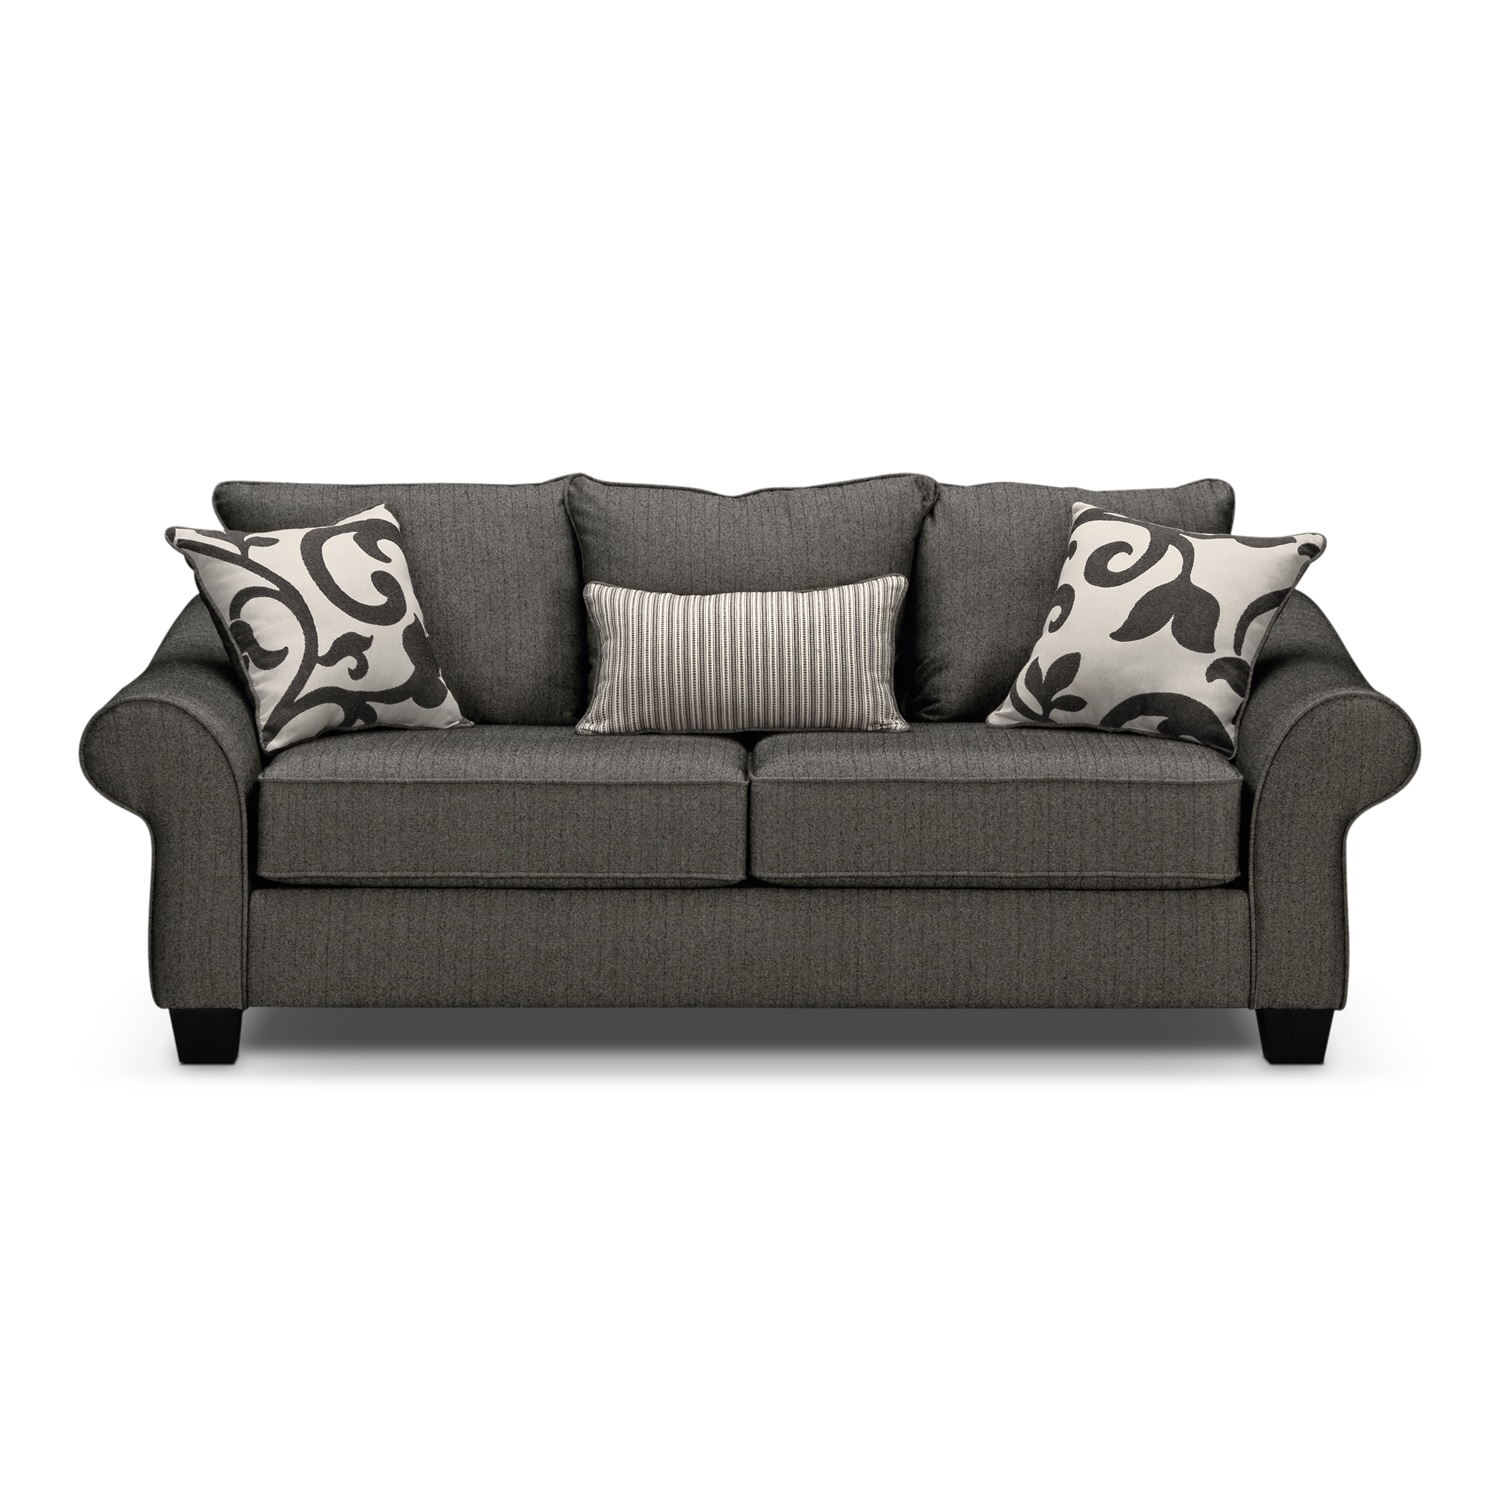 colette full memory foam sleeper sofa gray value city furniture